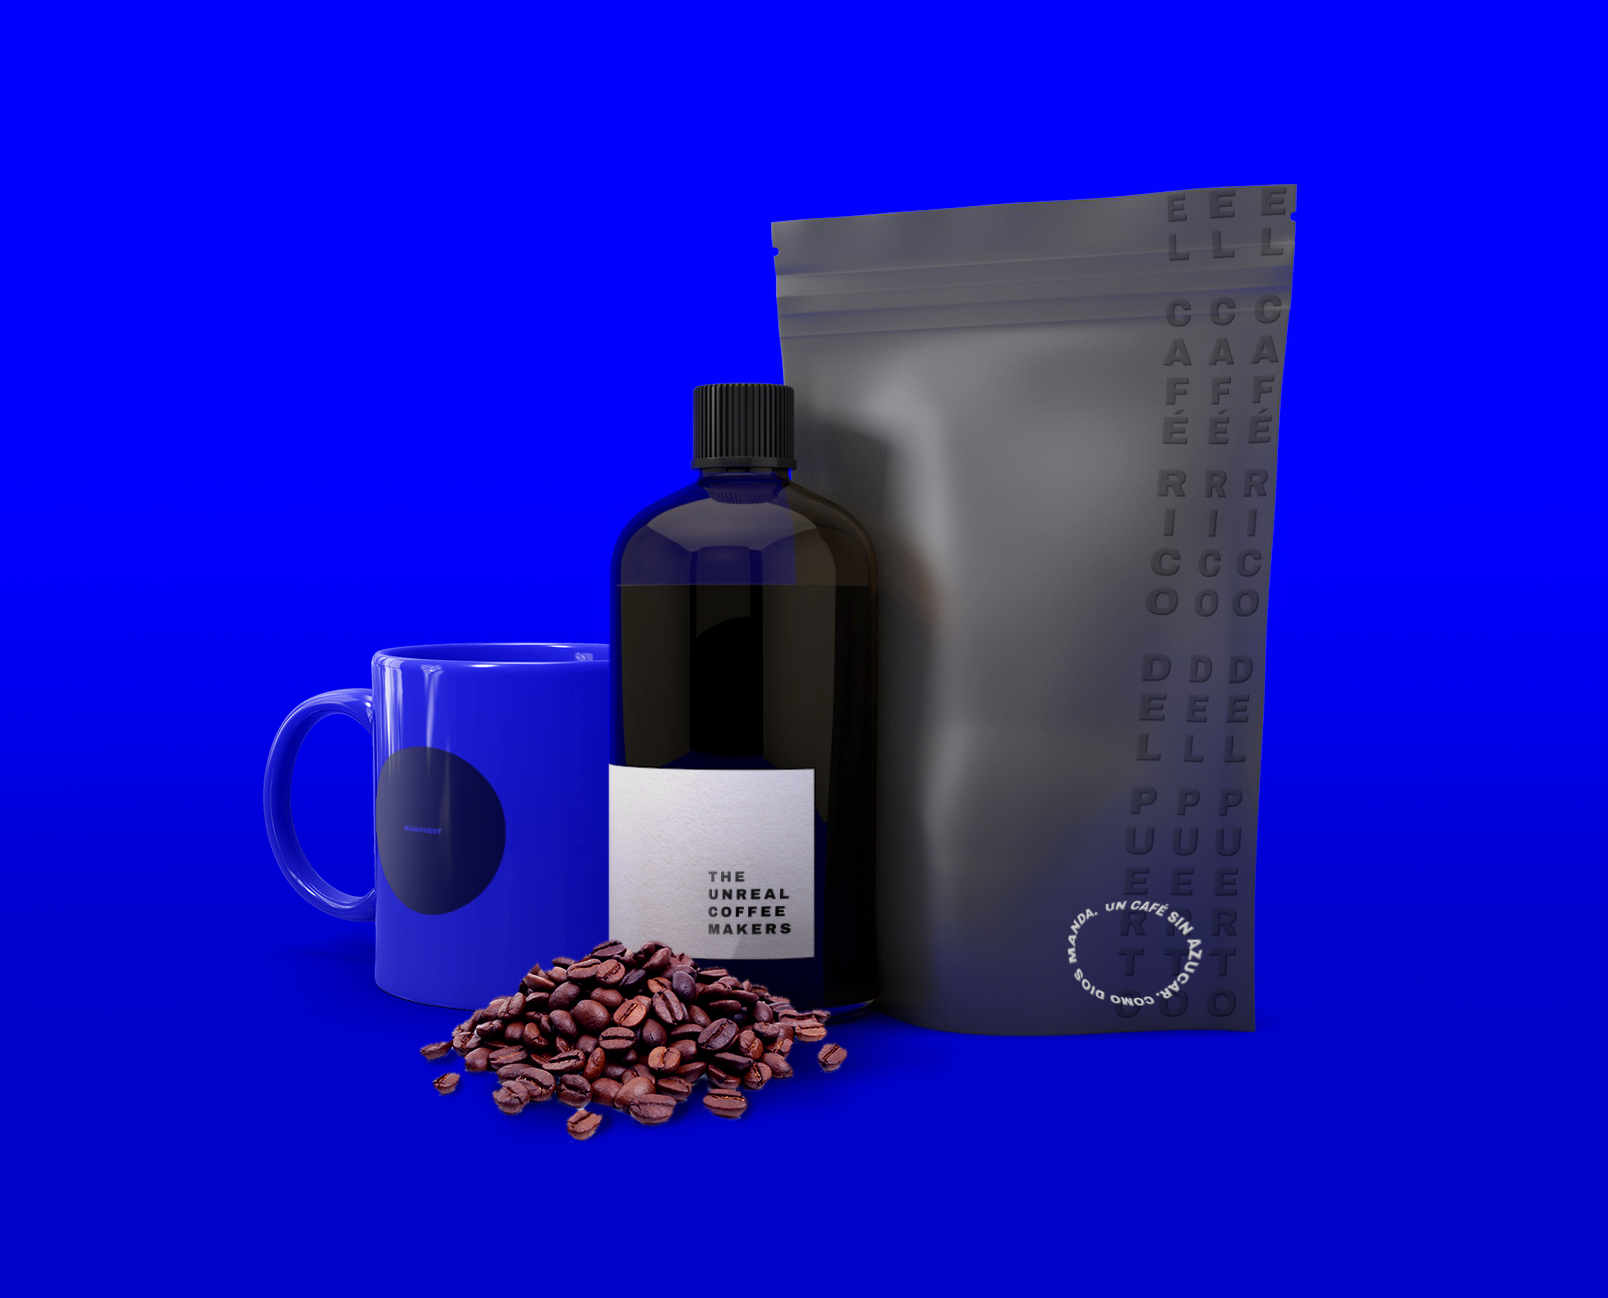 The unreal Coffee Makers, a Graphic Identity Focused on Coffee Lovers